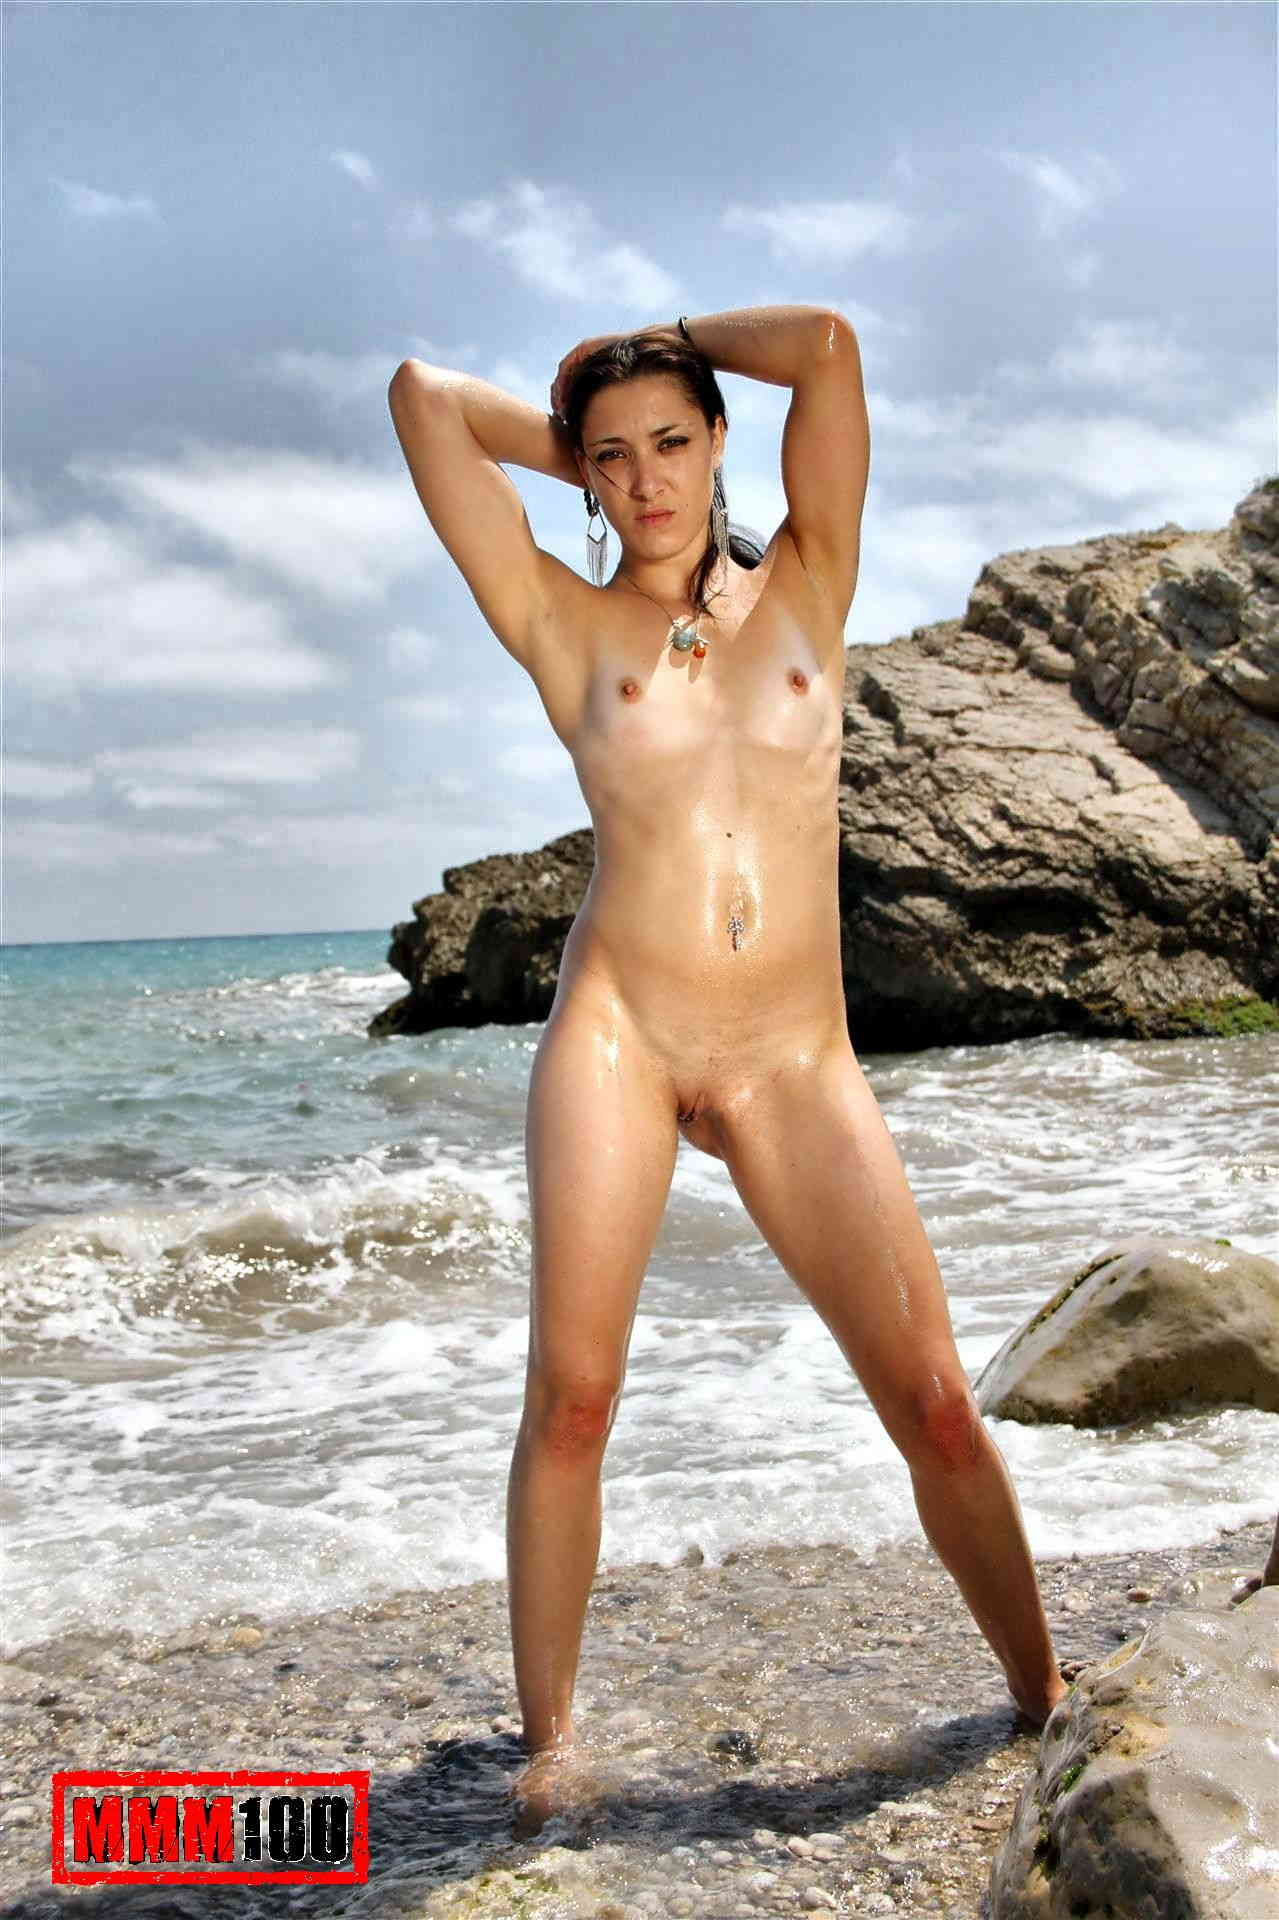 Hot Coralie Fever stripping on the beach